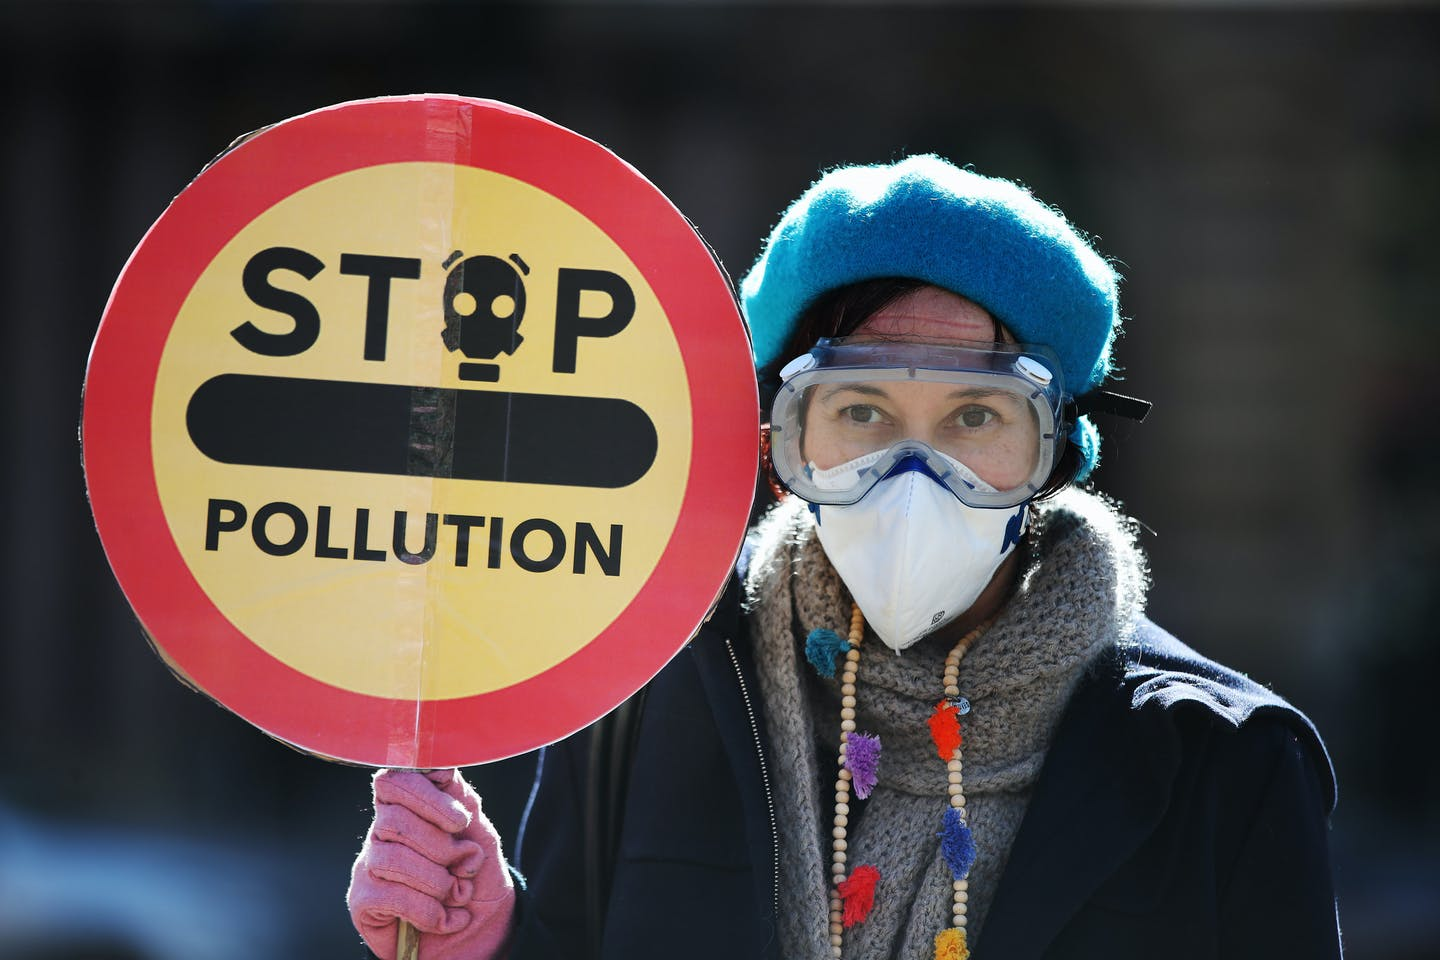 A Friends of the Earth protester objecting to the poor air quality in Glasgow, Scotland